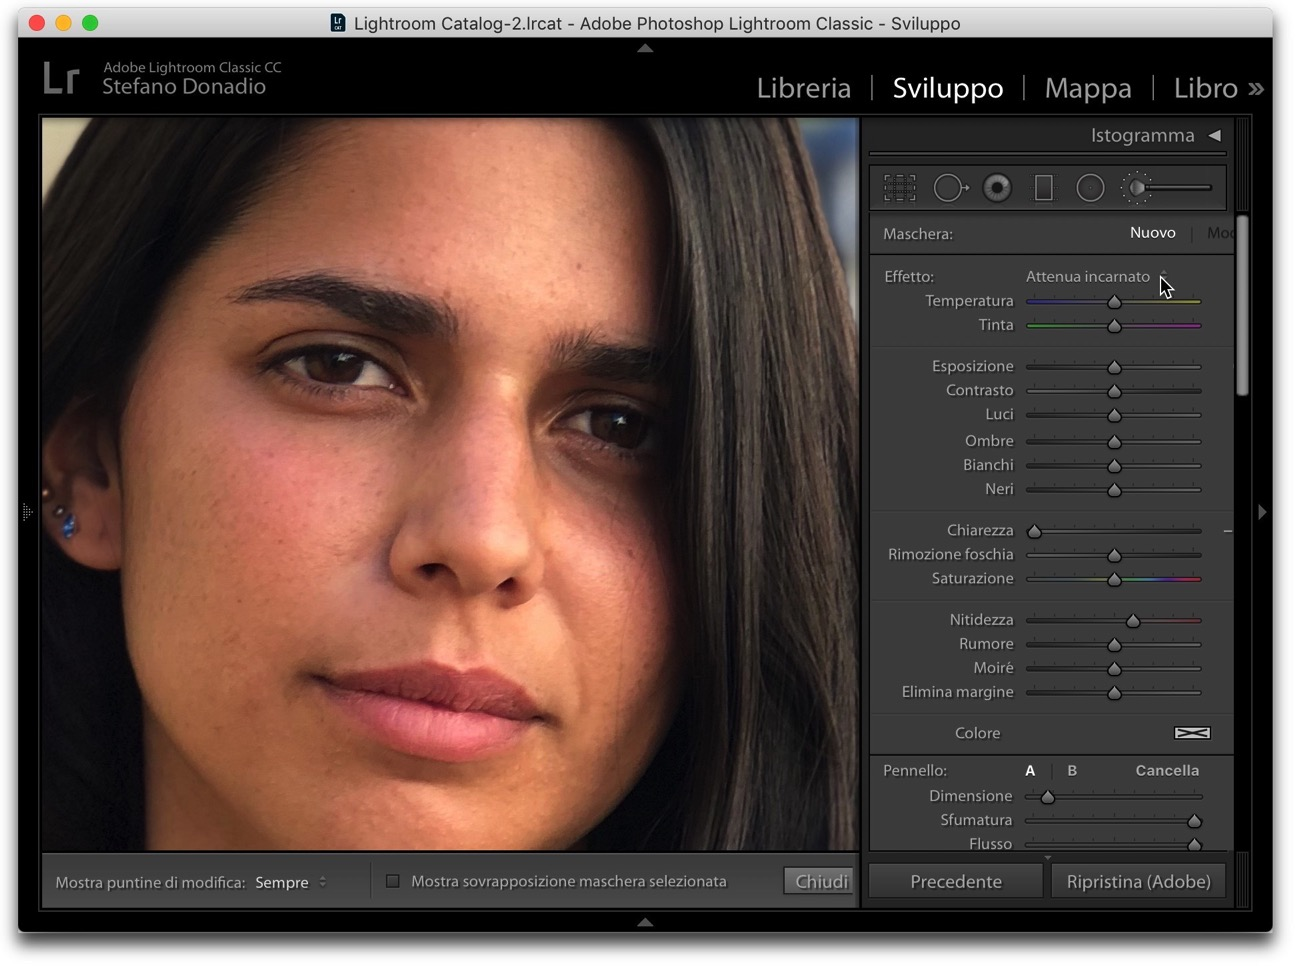 Lightroom attenua incarnato